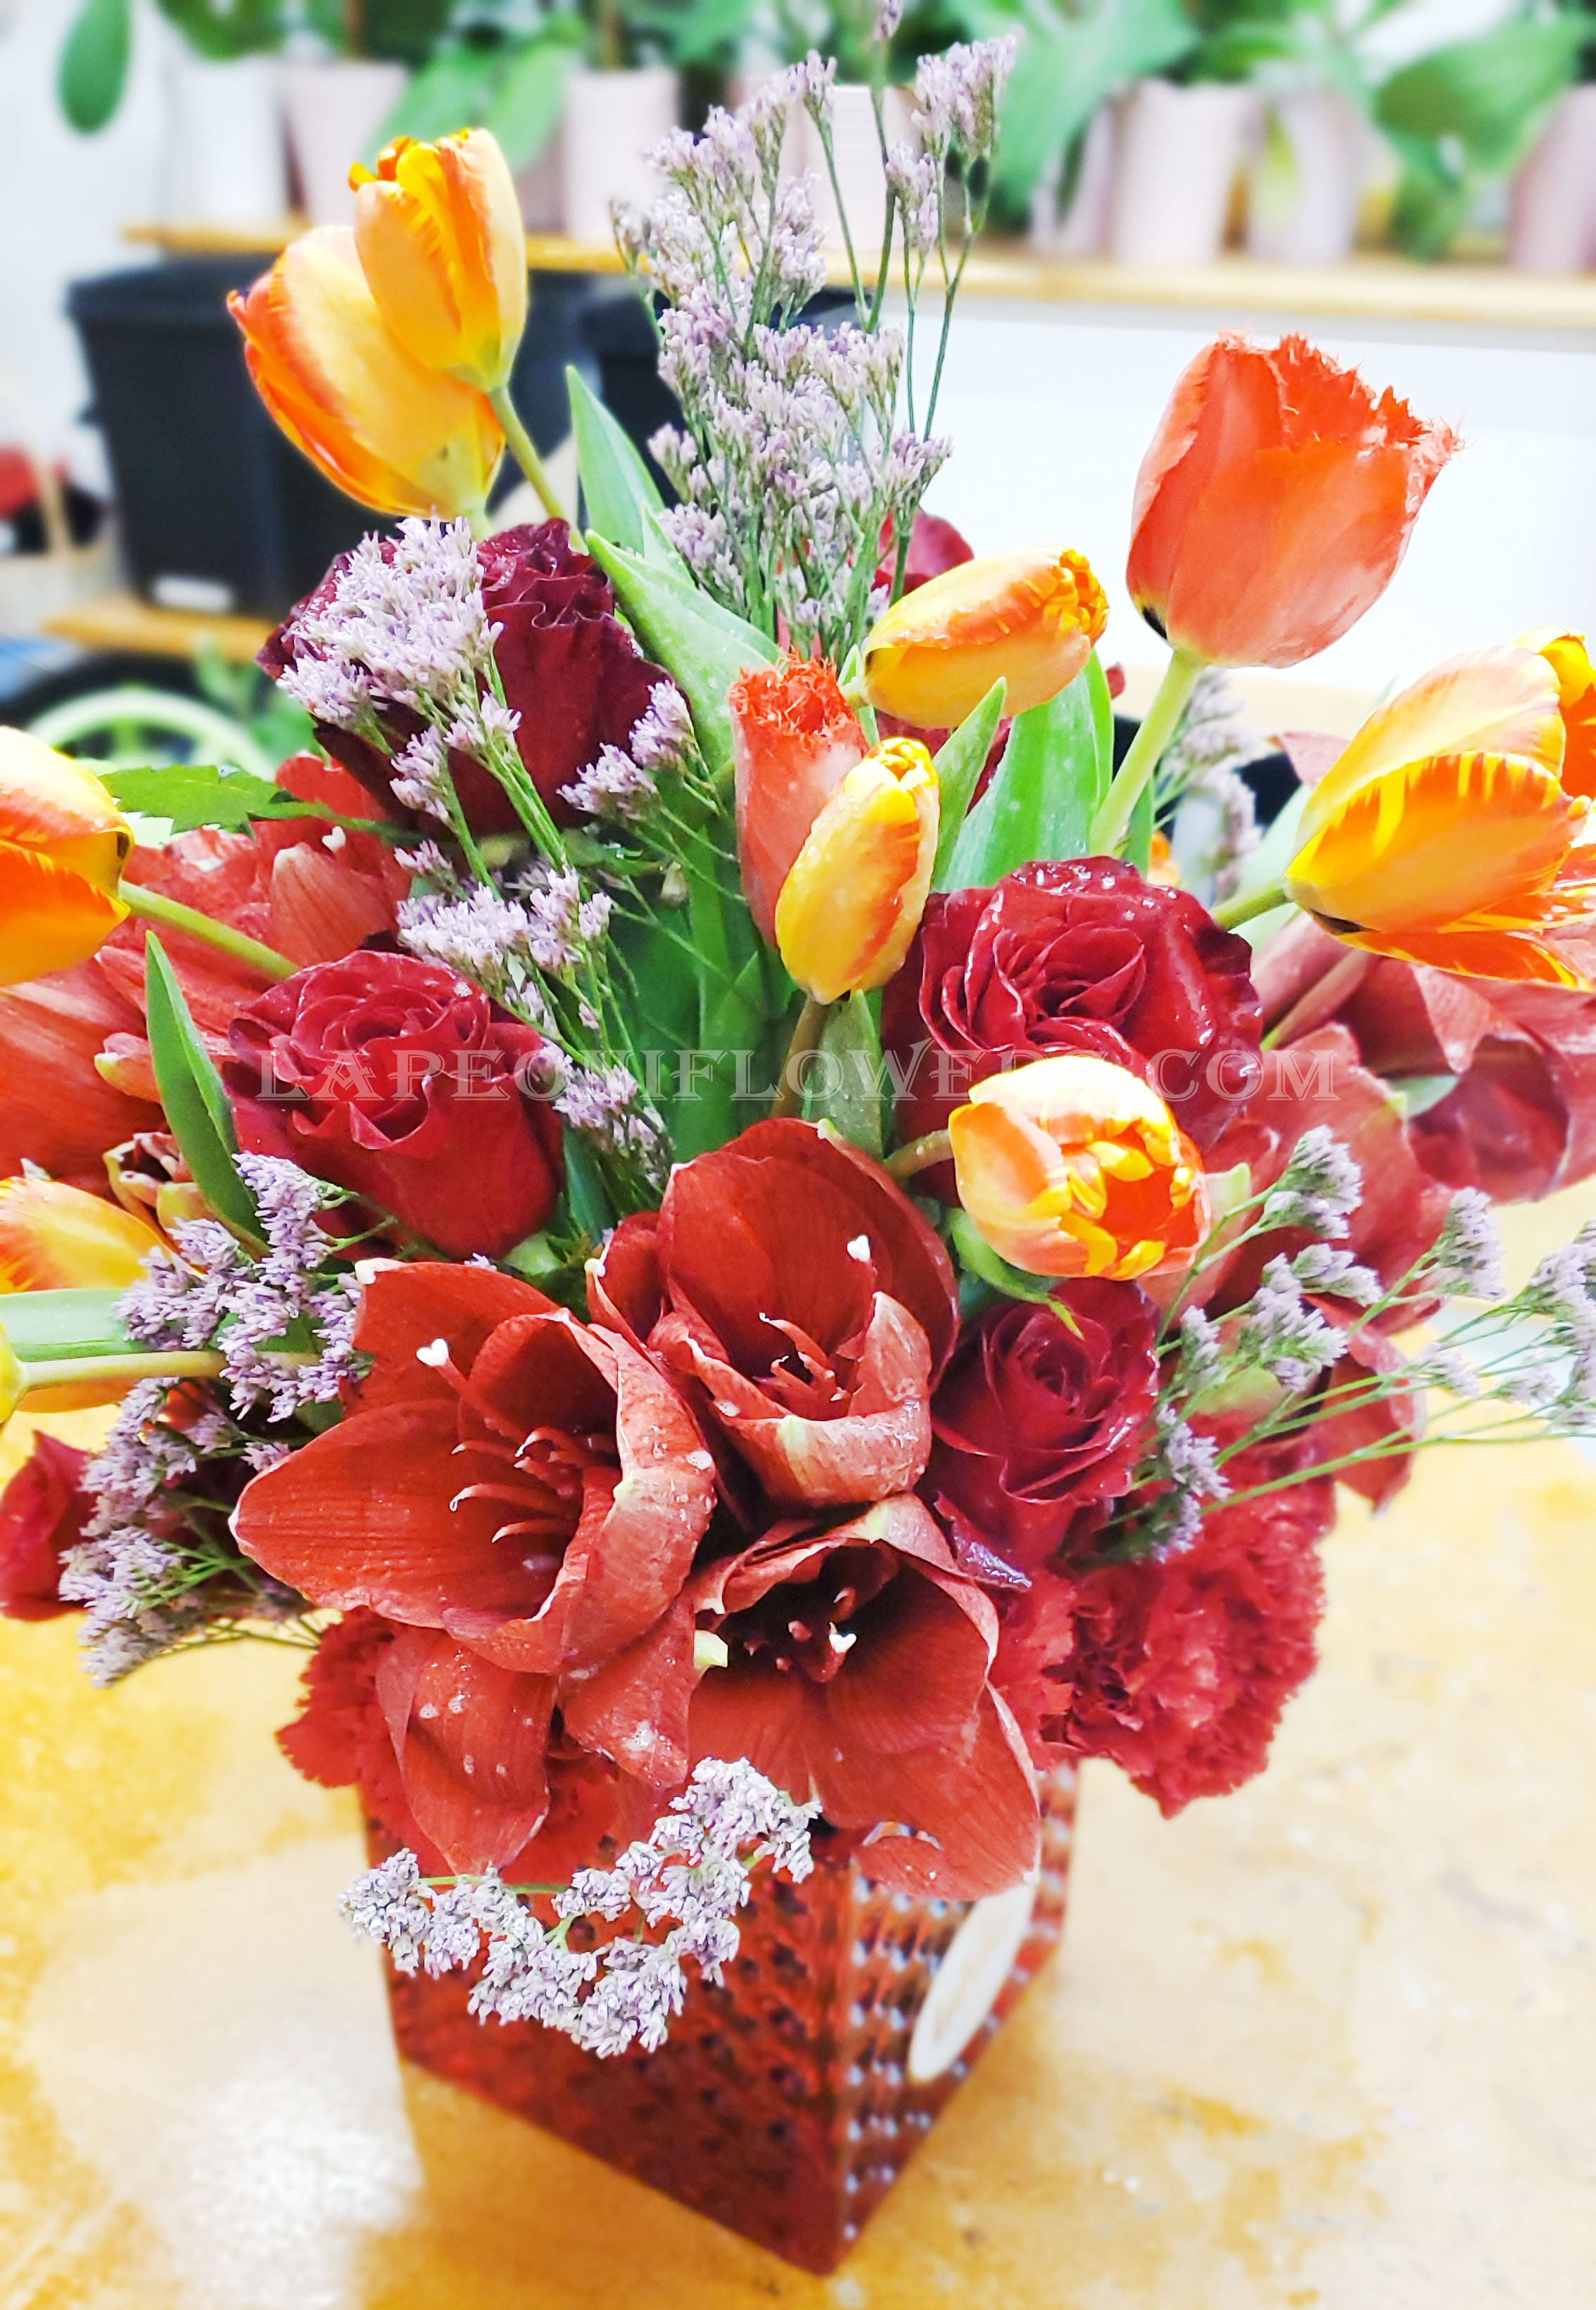 Tulips and Roses in a Vase - Lapeoni Flowers and Events